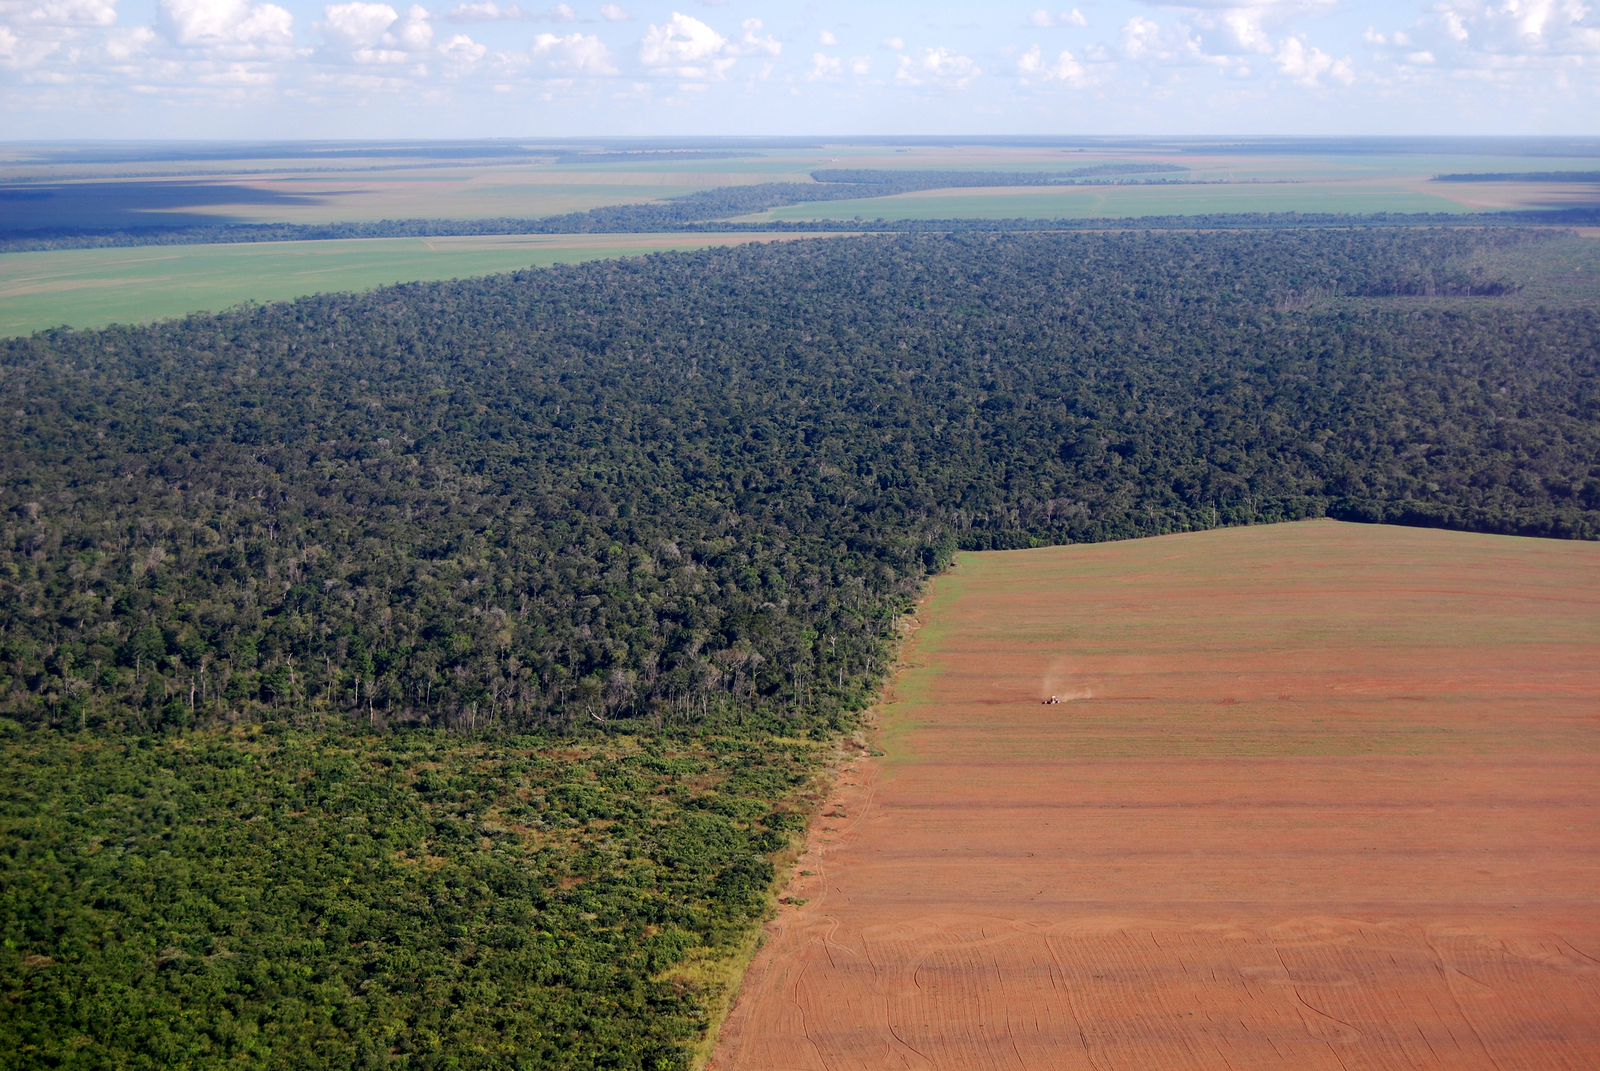 10 Things You NEED to Know About Soy Related Deforestation and the Shocking Way Your Diet can Fix it